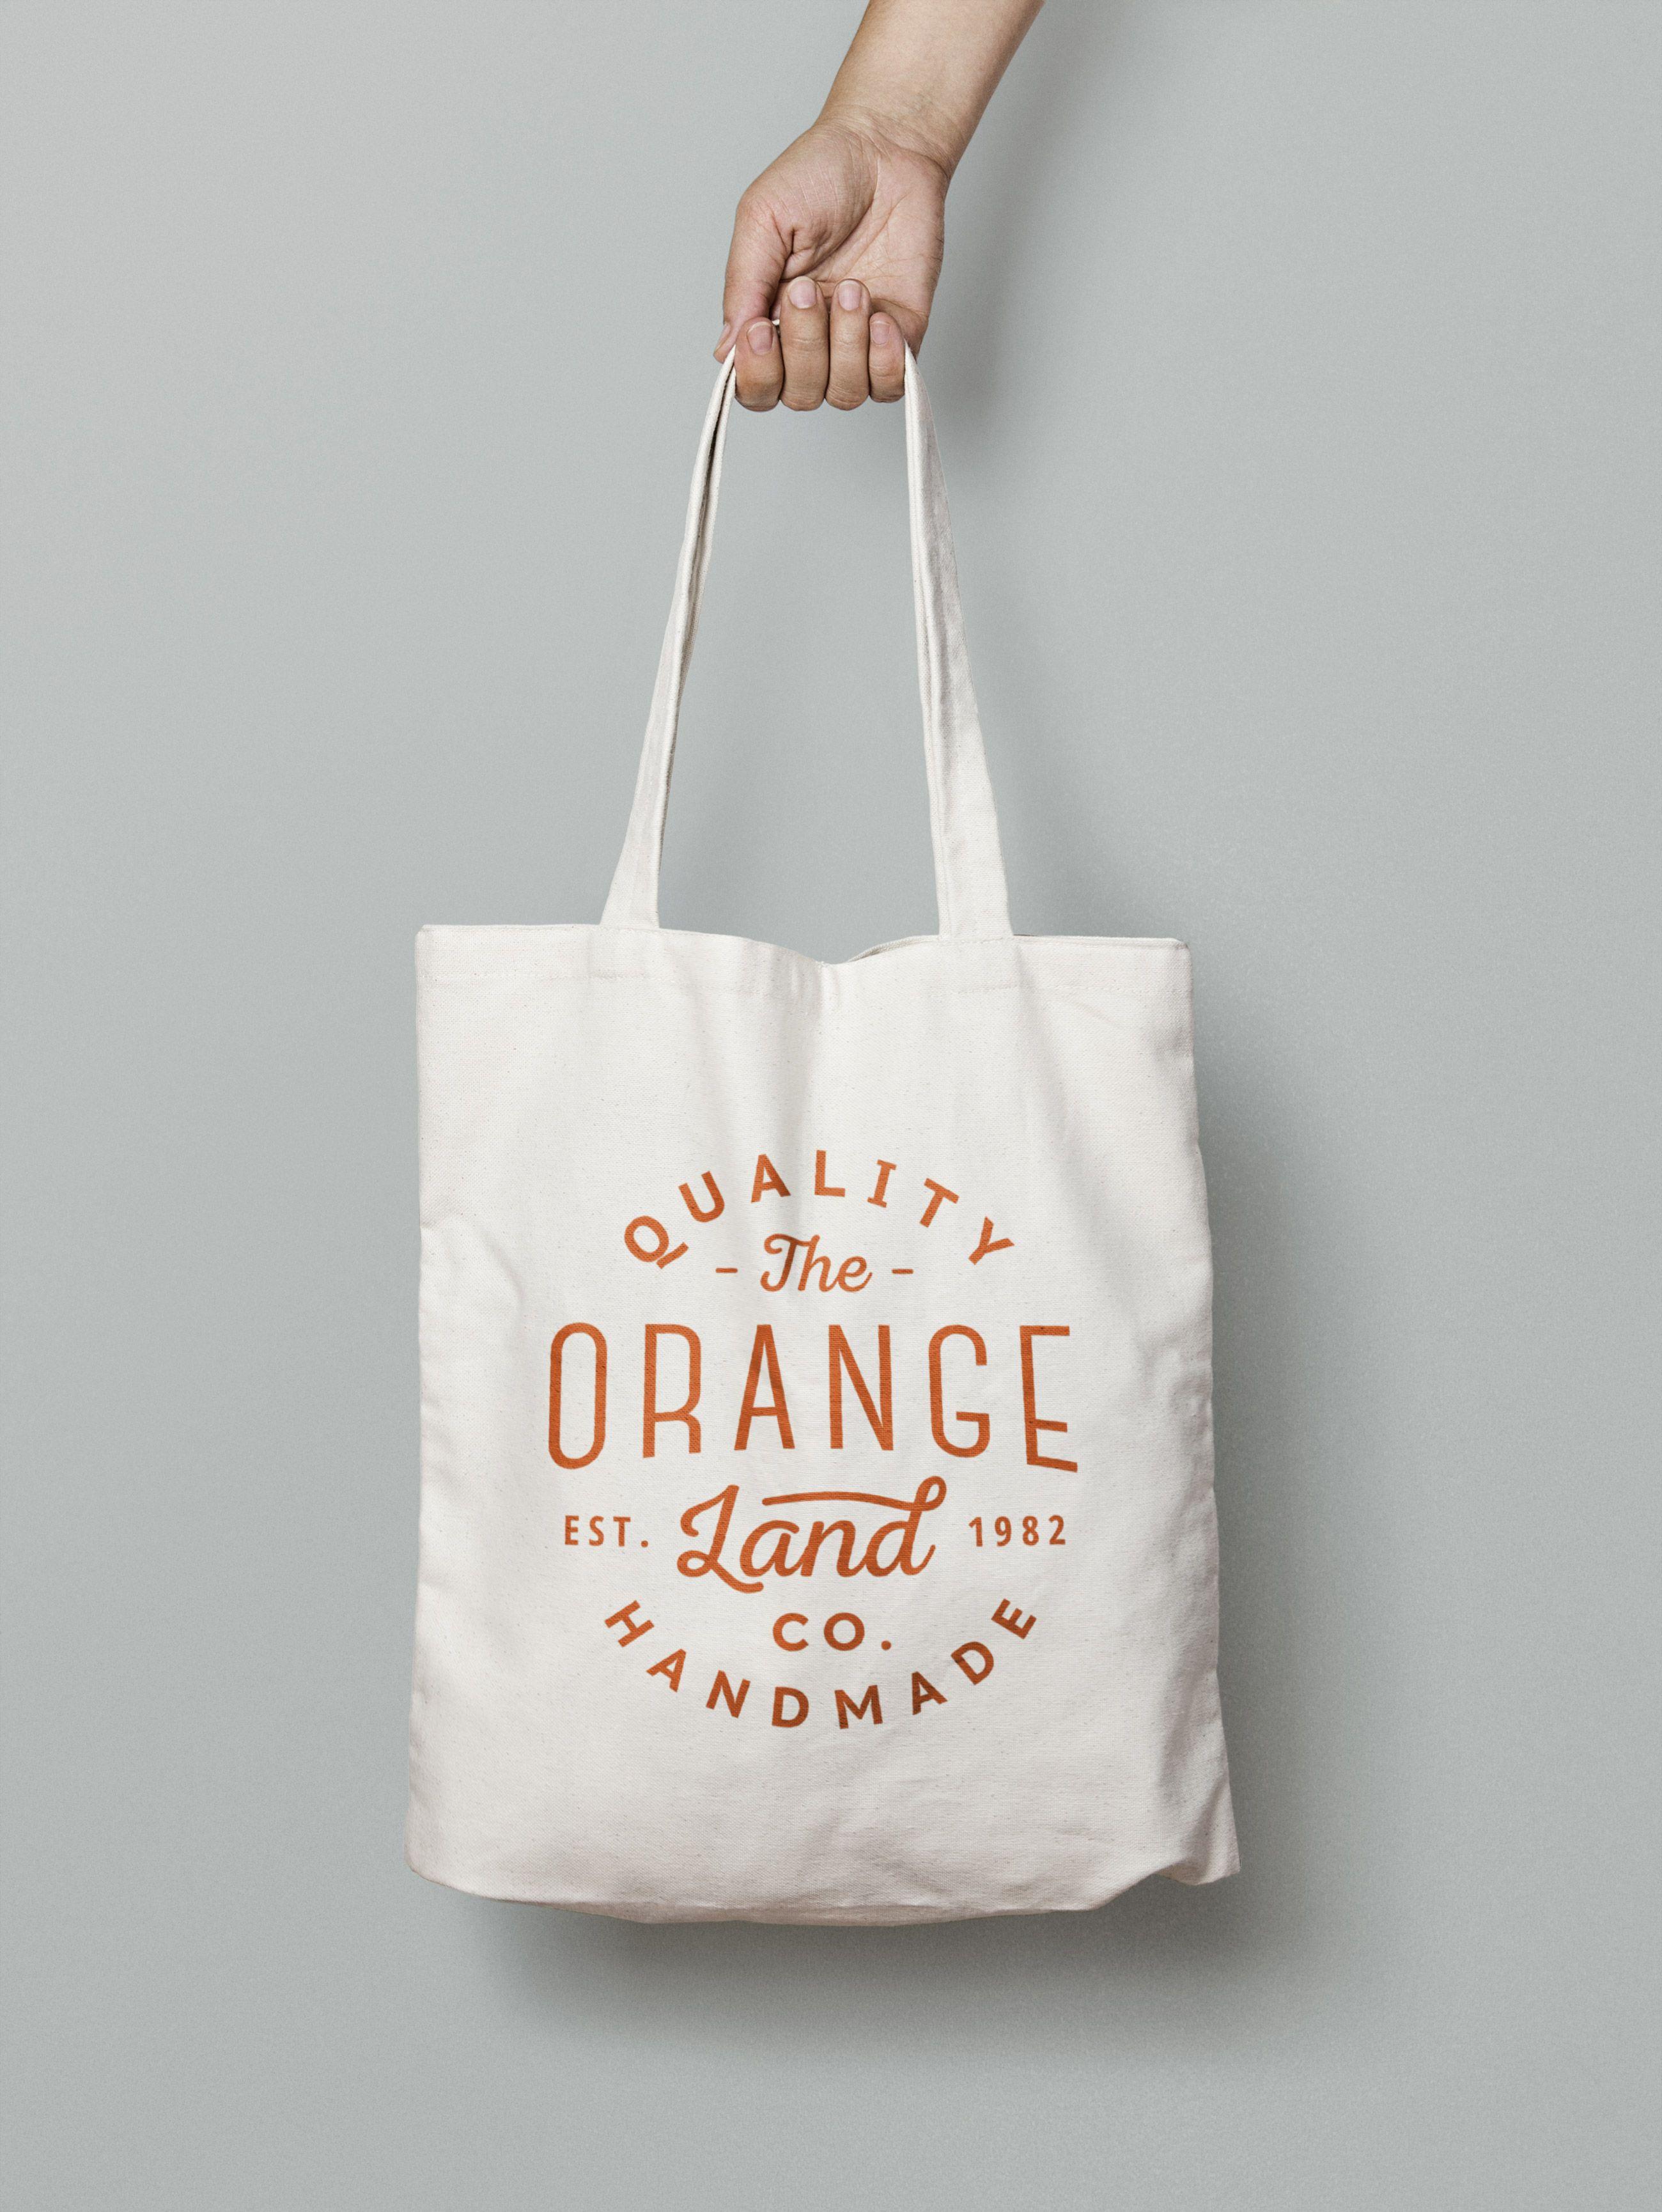 76b03818b5c8 A high quality canvas tote bag mock-up which you may use freely to showcase  your branding design in a photorealistic manner. Apply your design on the  tote ...